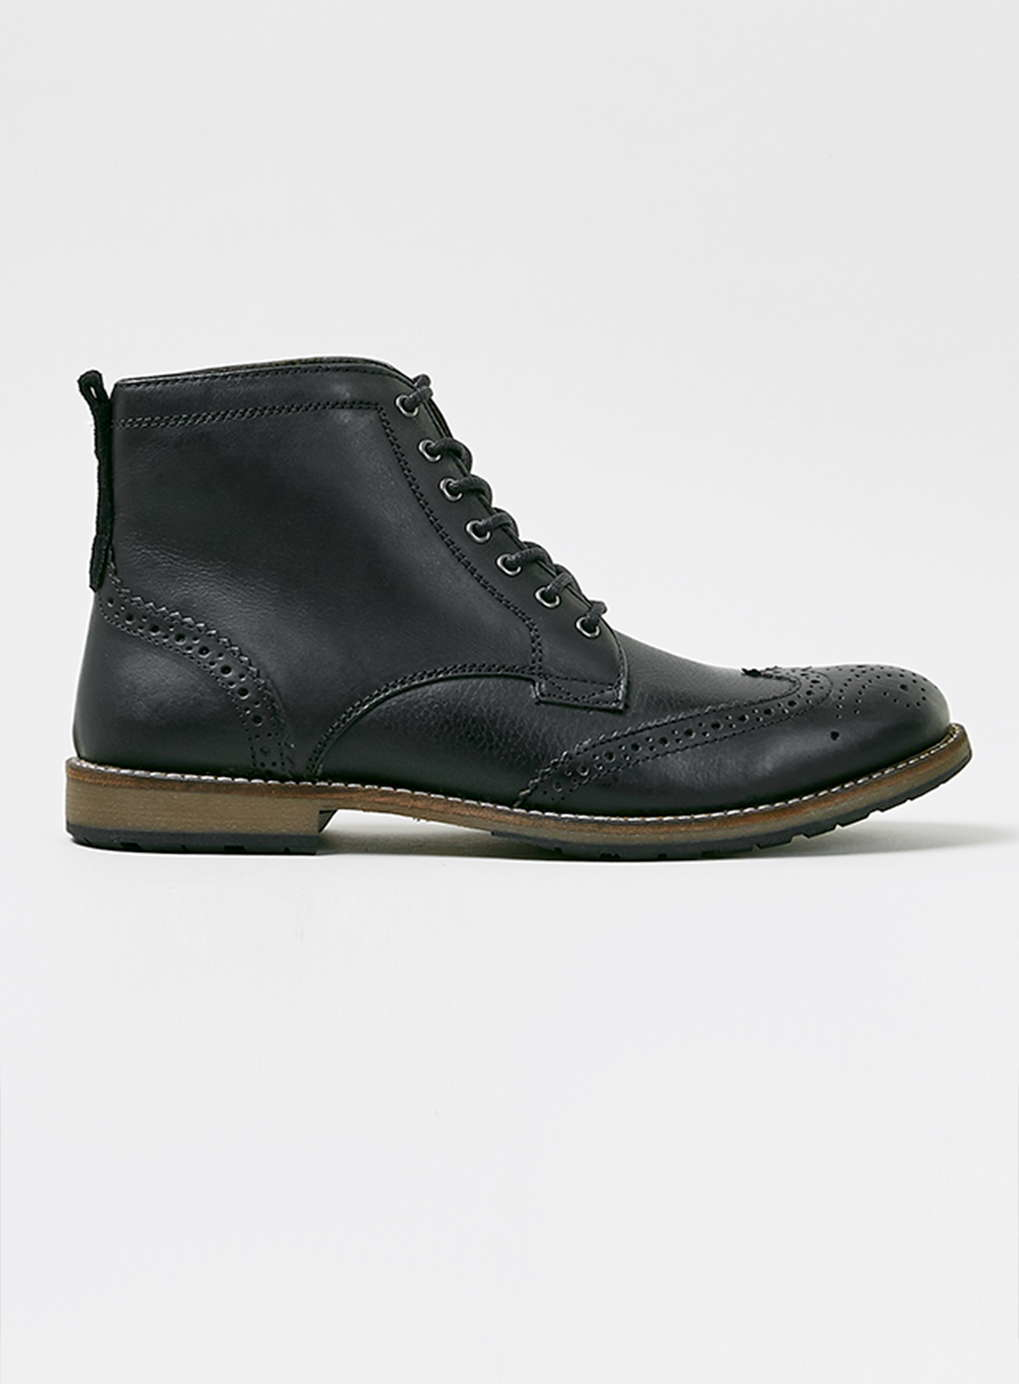 topman black leather brogue boots in black for lyst